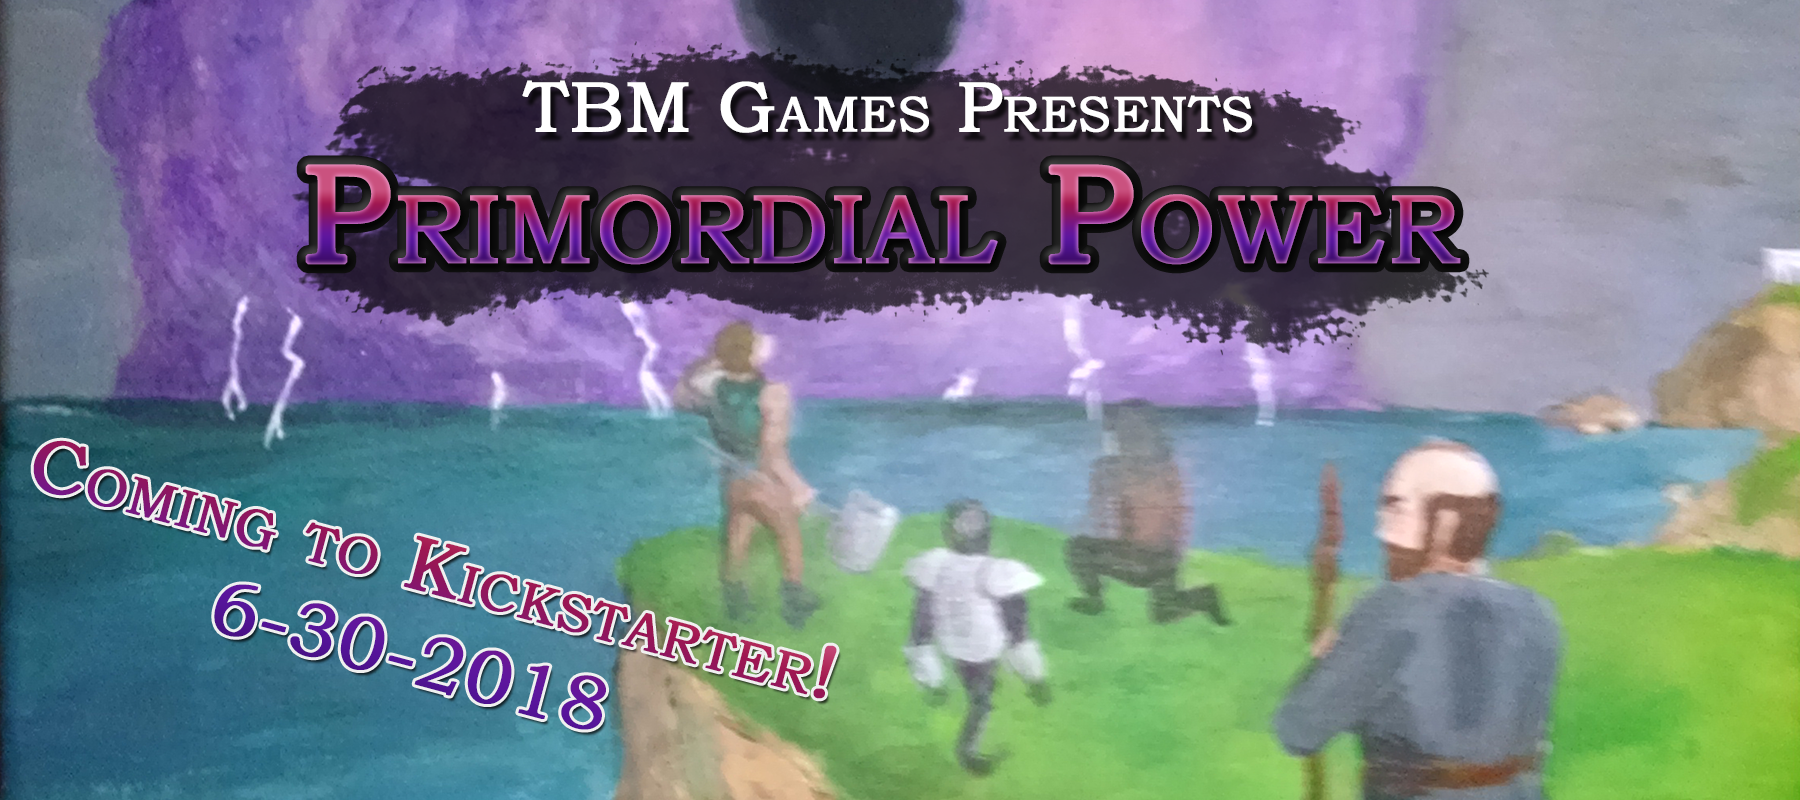 Primordial Power – TBM Games